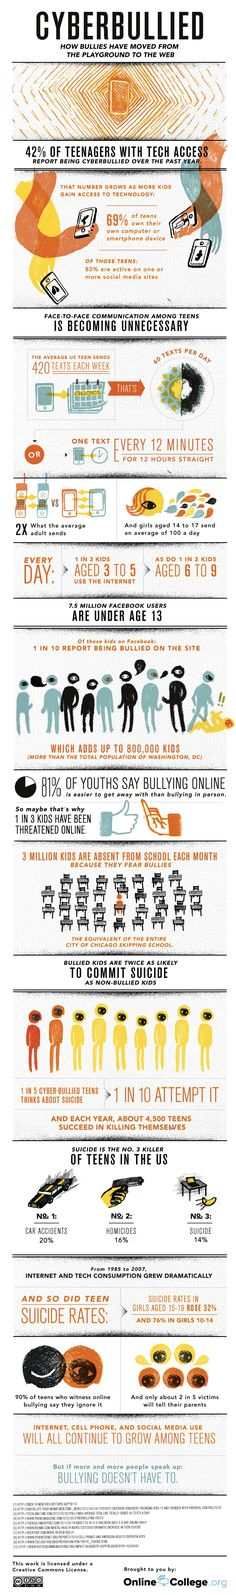 Cyberbullying isn't new; a 2004 study found that 42% of kids had been bullied online — and that's before Facebook, Twitter and other networks eclipsed MySpace and started a social revolution. With more and more kids maintaining online profiles and owning smartphones, tablets and other connected devices, the potential for abuse has multiplied.